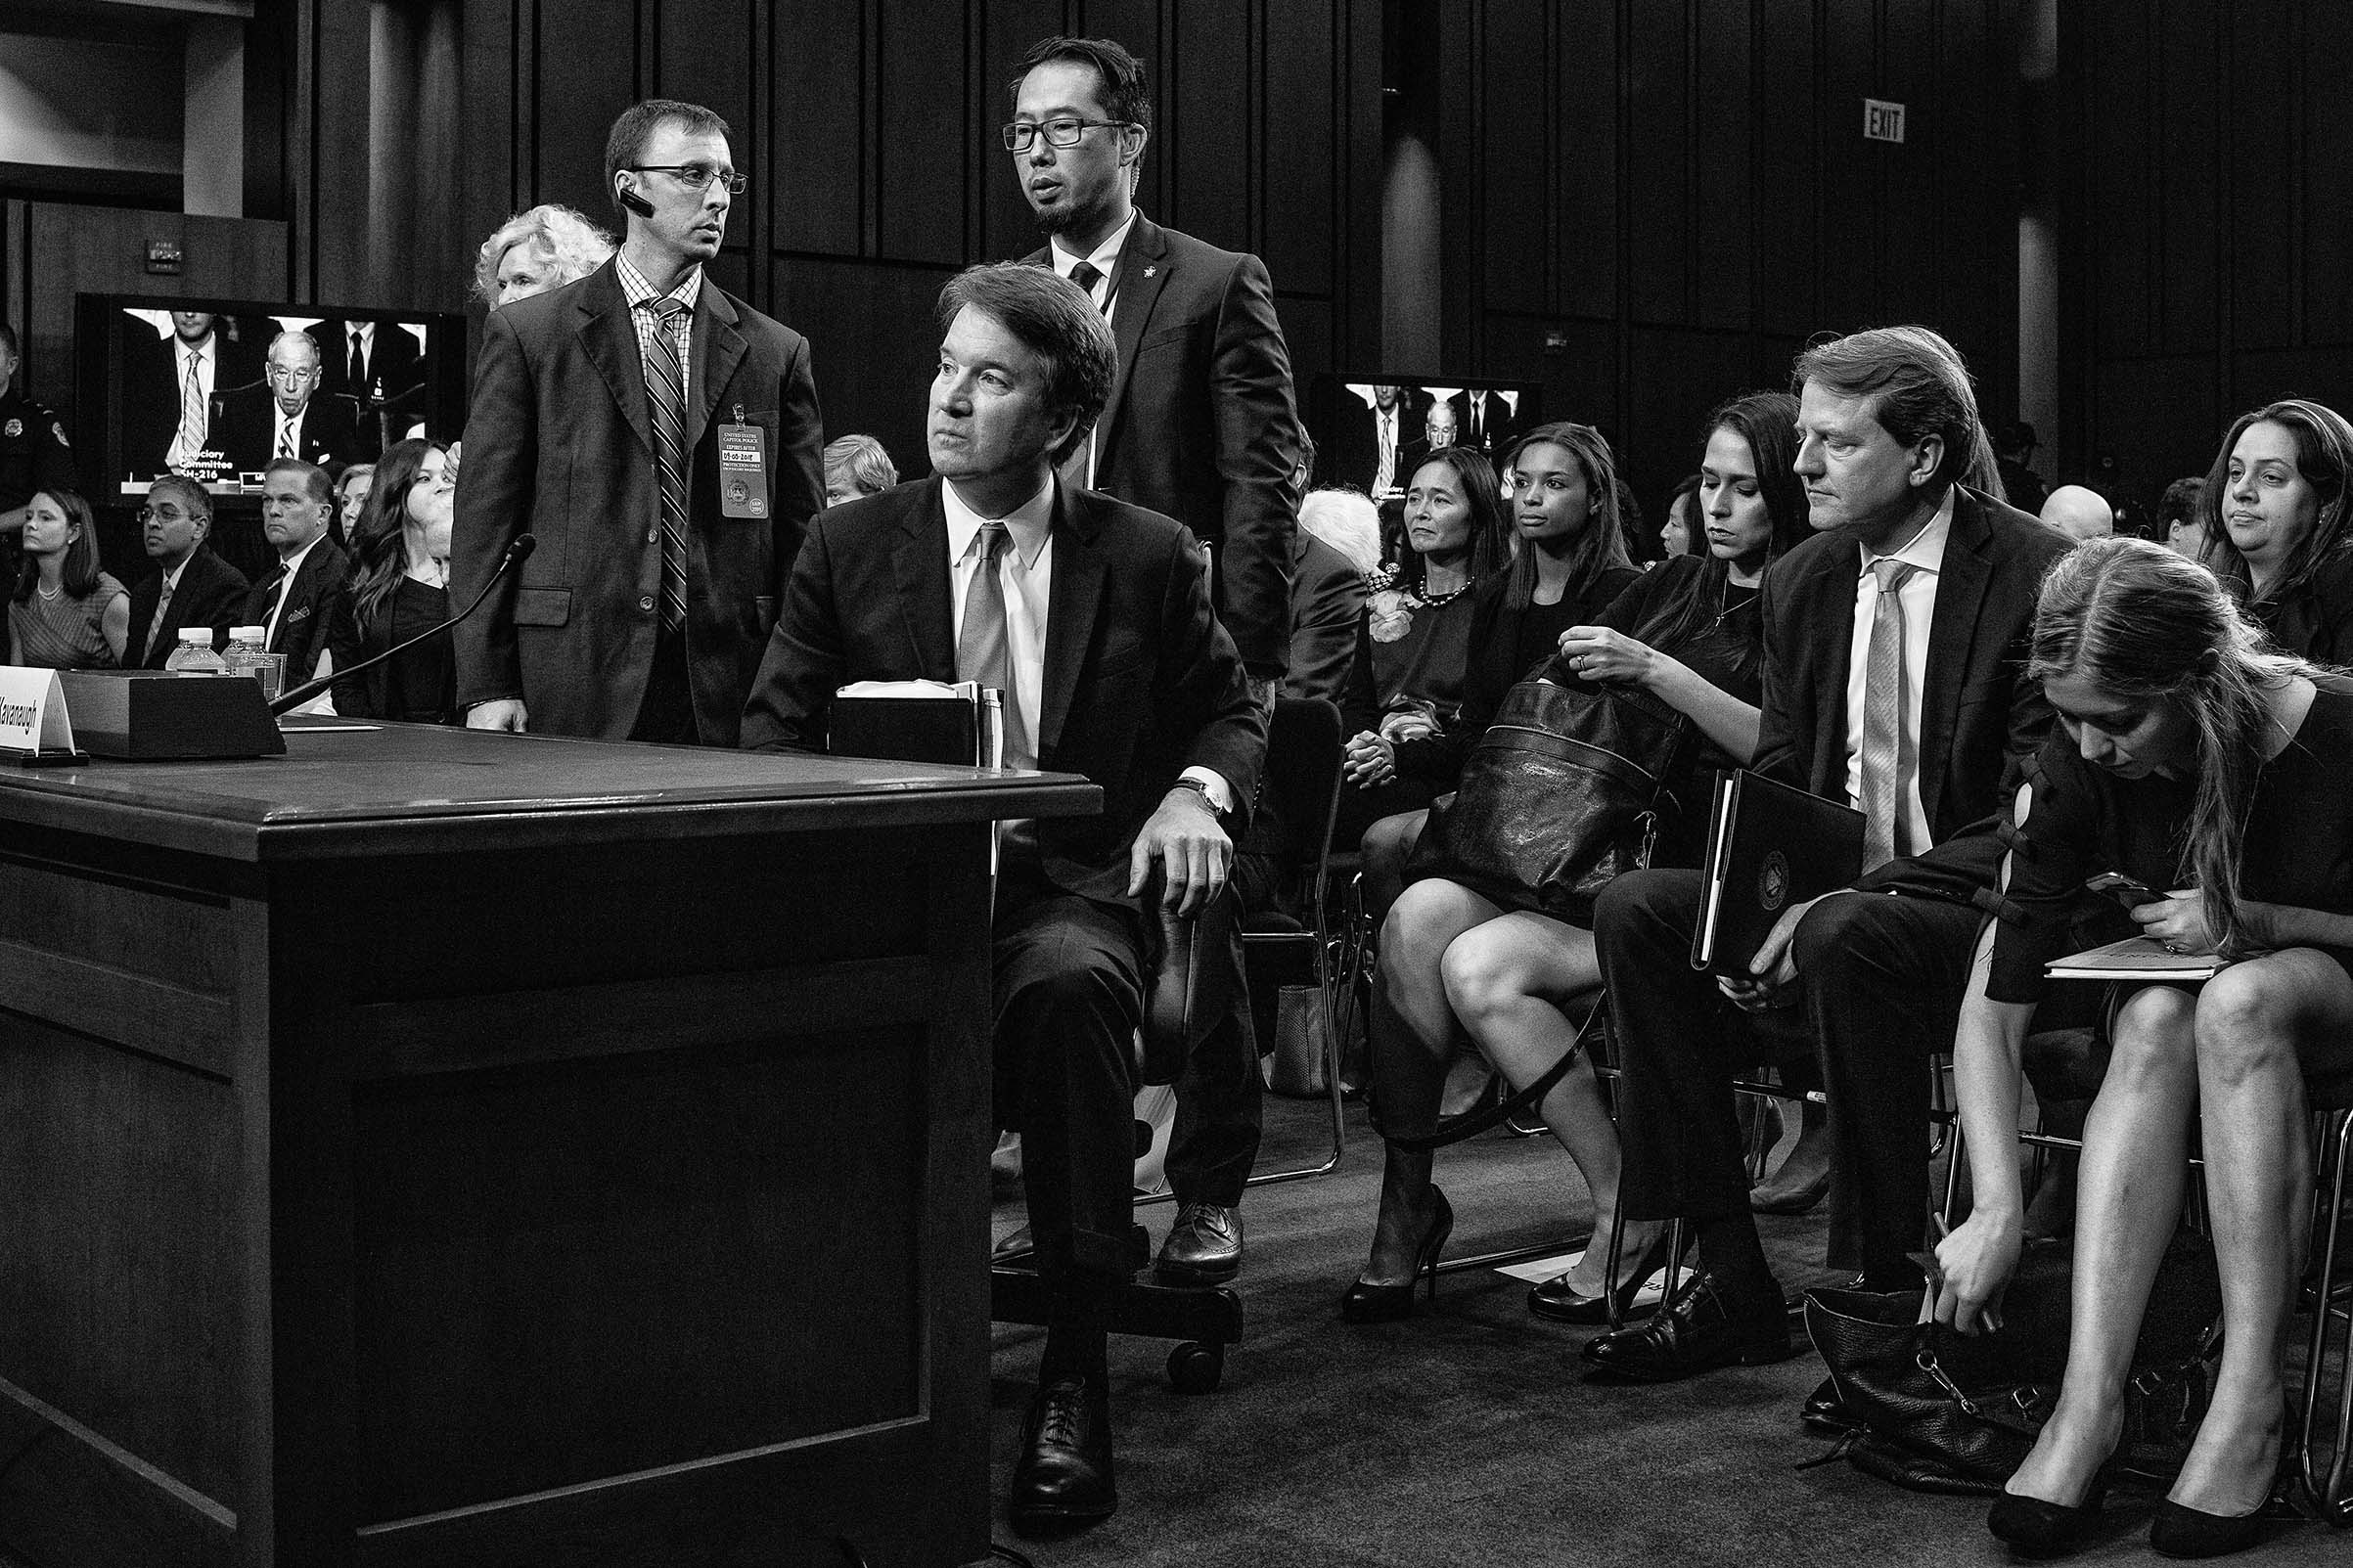 Supreme Court nominee Brett Kavanaugh at his Senate confirmation hearing on Sept. 5